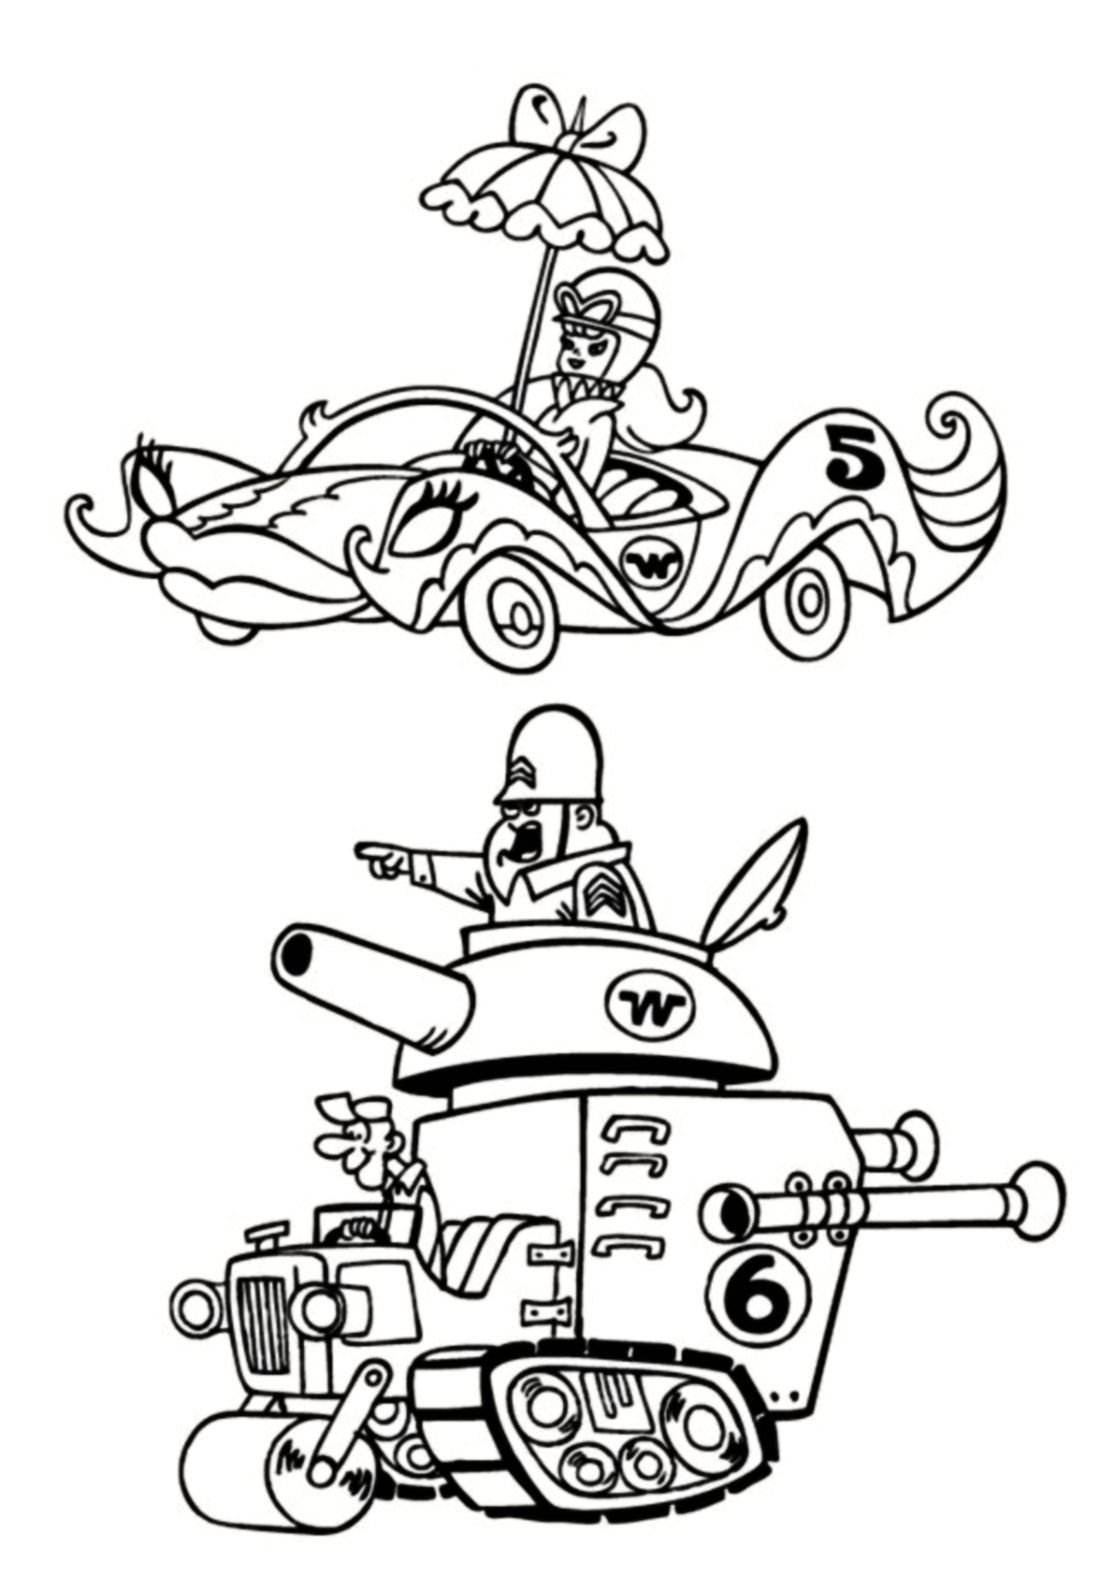 hanna barbera coloring pages - photo#39